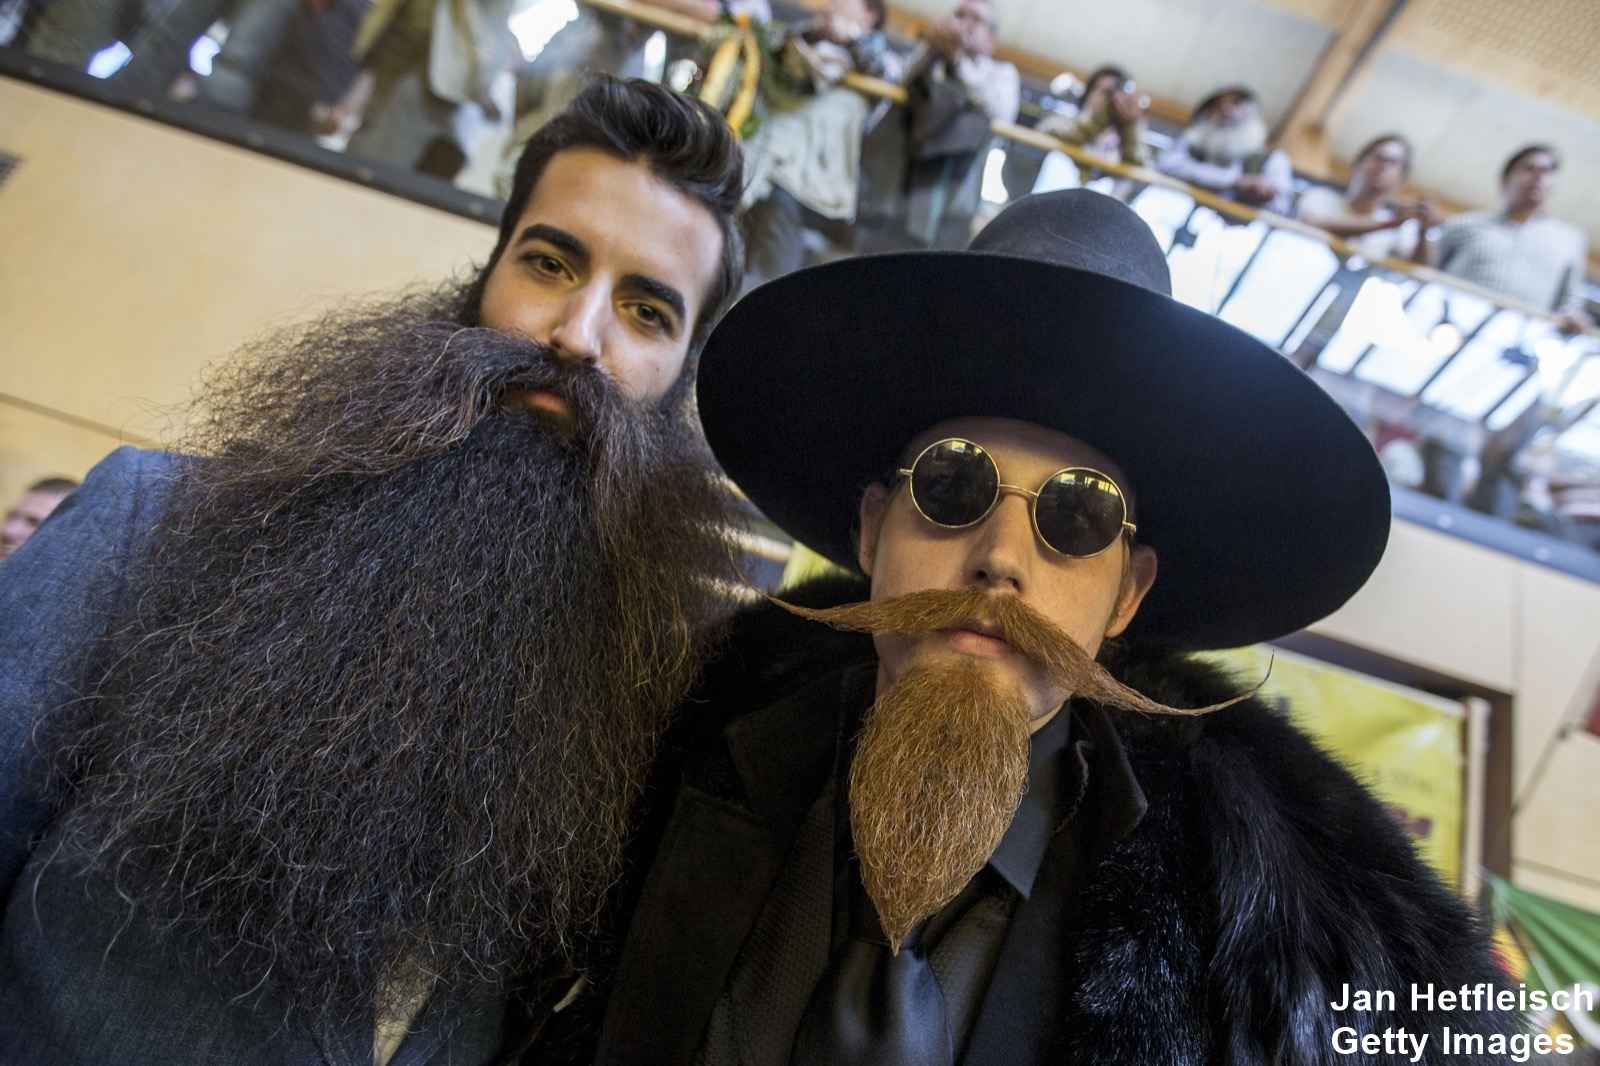 LEOGANG, AUSTRIA - OCTOBER 3: Contestant of the World Beard And Mustache Championships pose for a picture during the Championships 2015 on October 3, 2015 in Leogang, Austria. Over 300 contestants in teams from across the globe have come to compete in sixteen different categories in three groups: mustache, partial beard and full beard. The event takes place every few years at different locations worldwide. (Photo by Jan Hetfleisch/Getty Images)